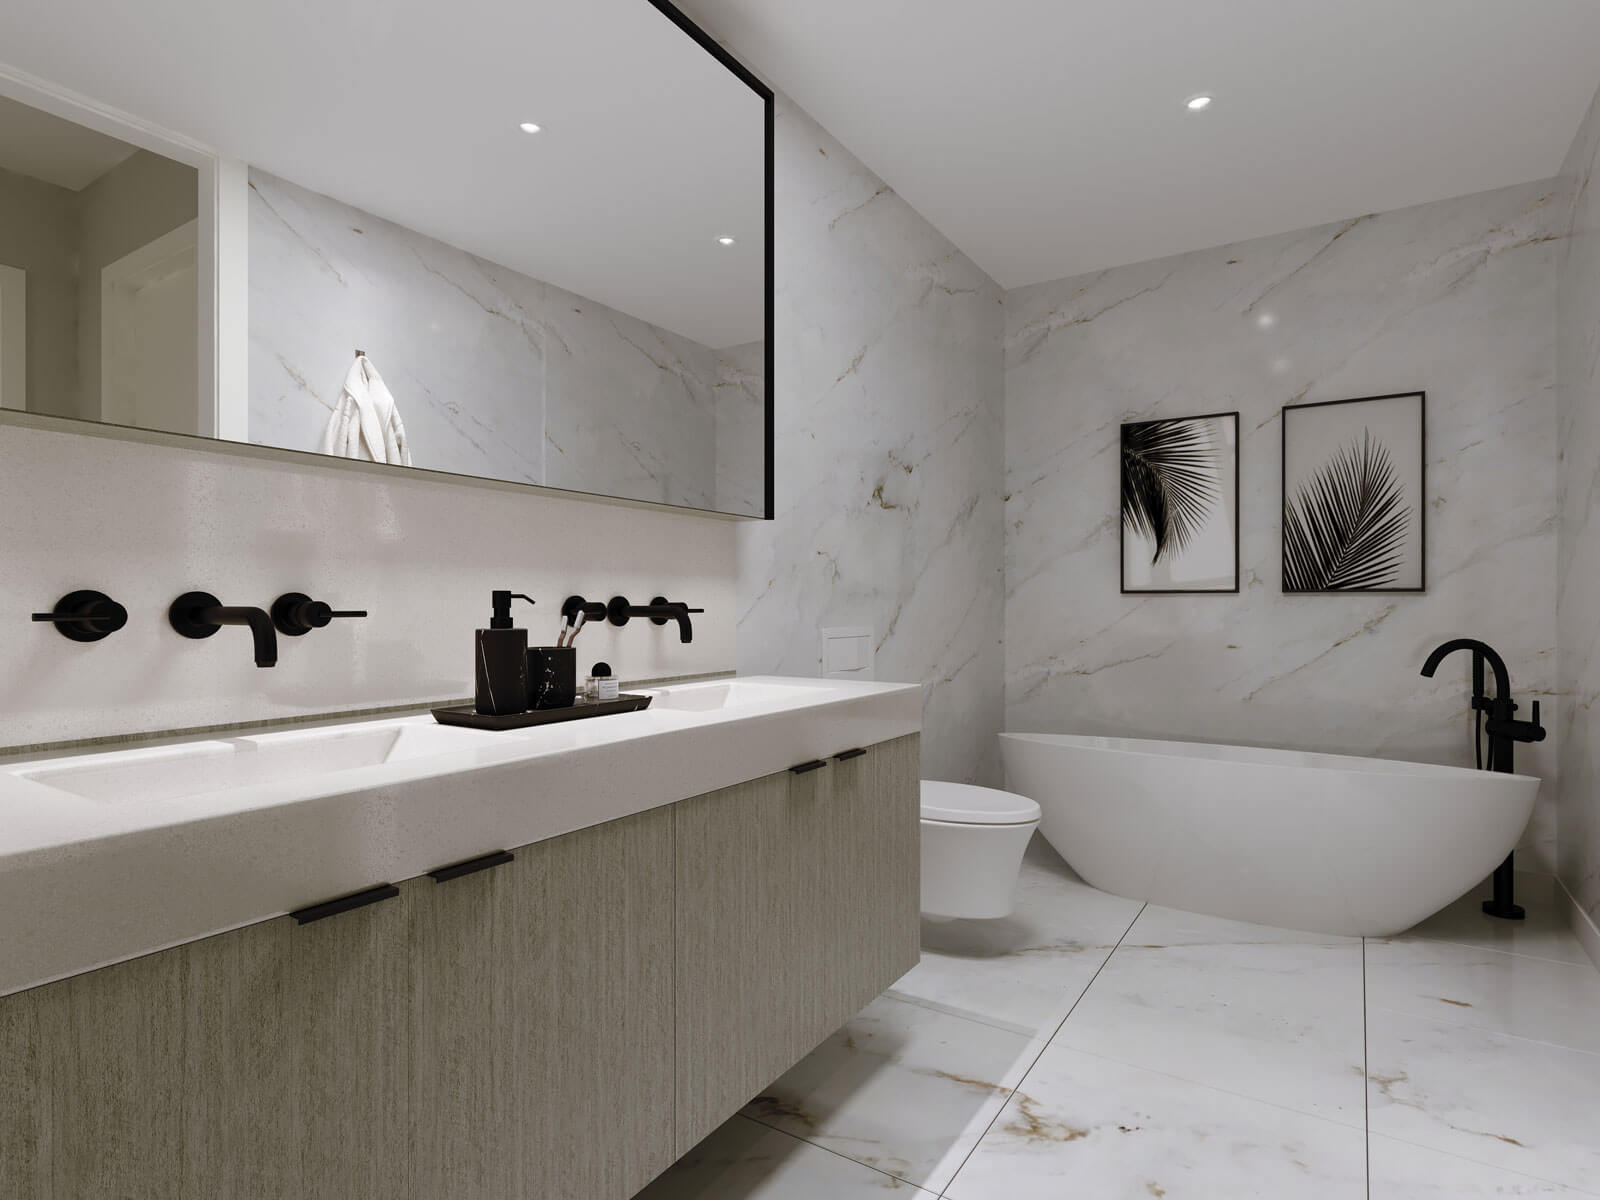 Modern bathroom with round bathtub, sink and mirror, featuring marbled walls and floors